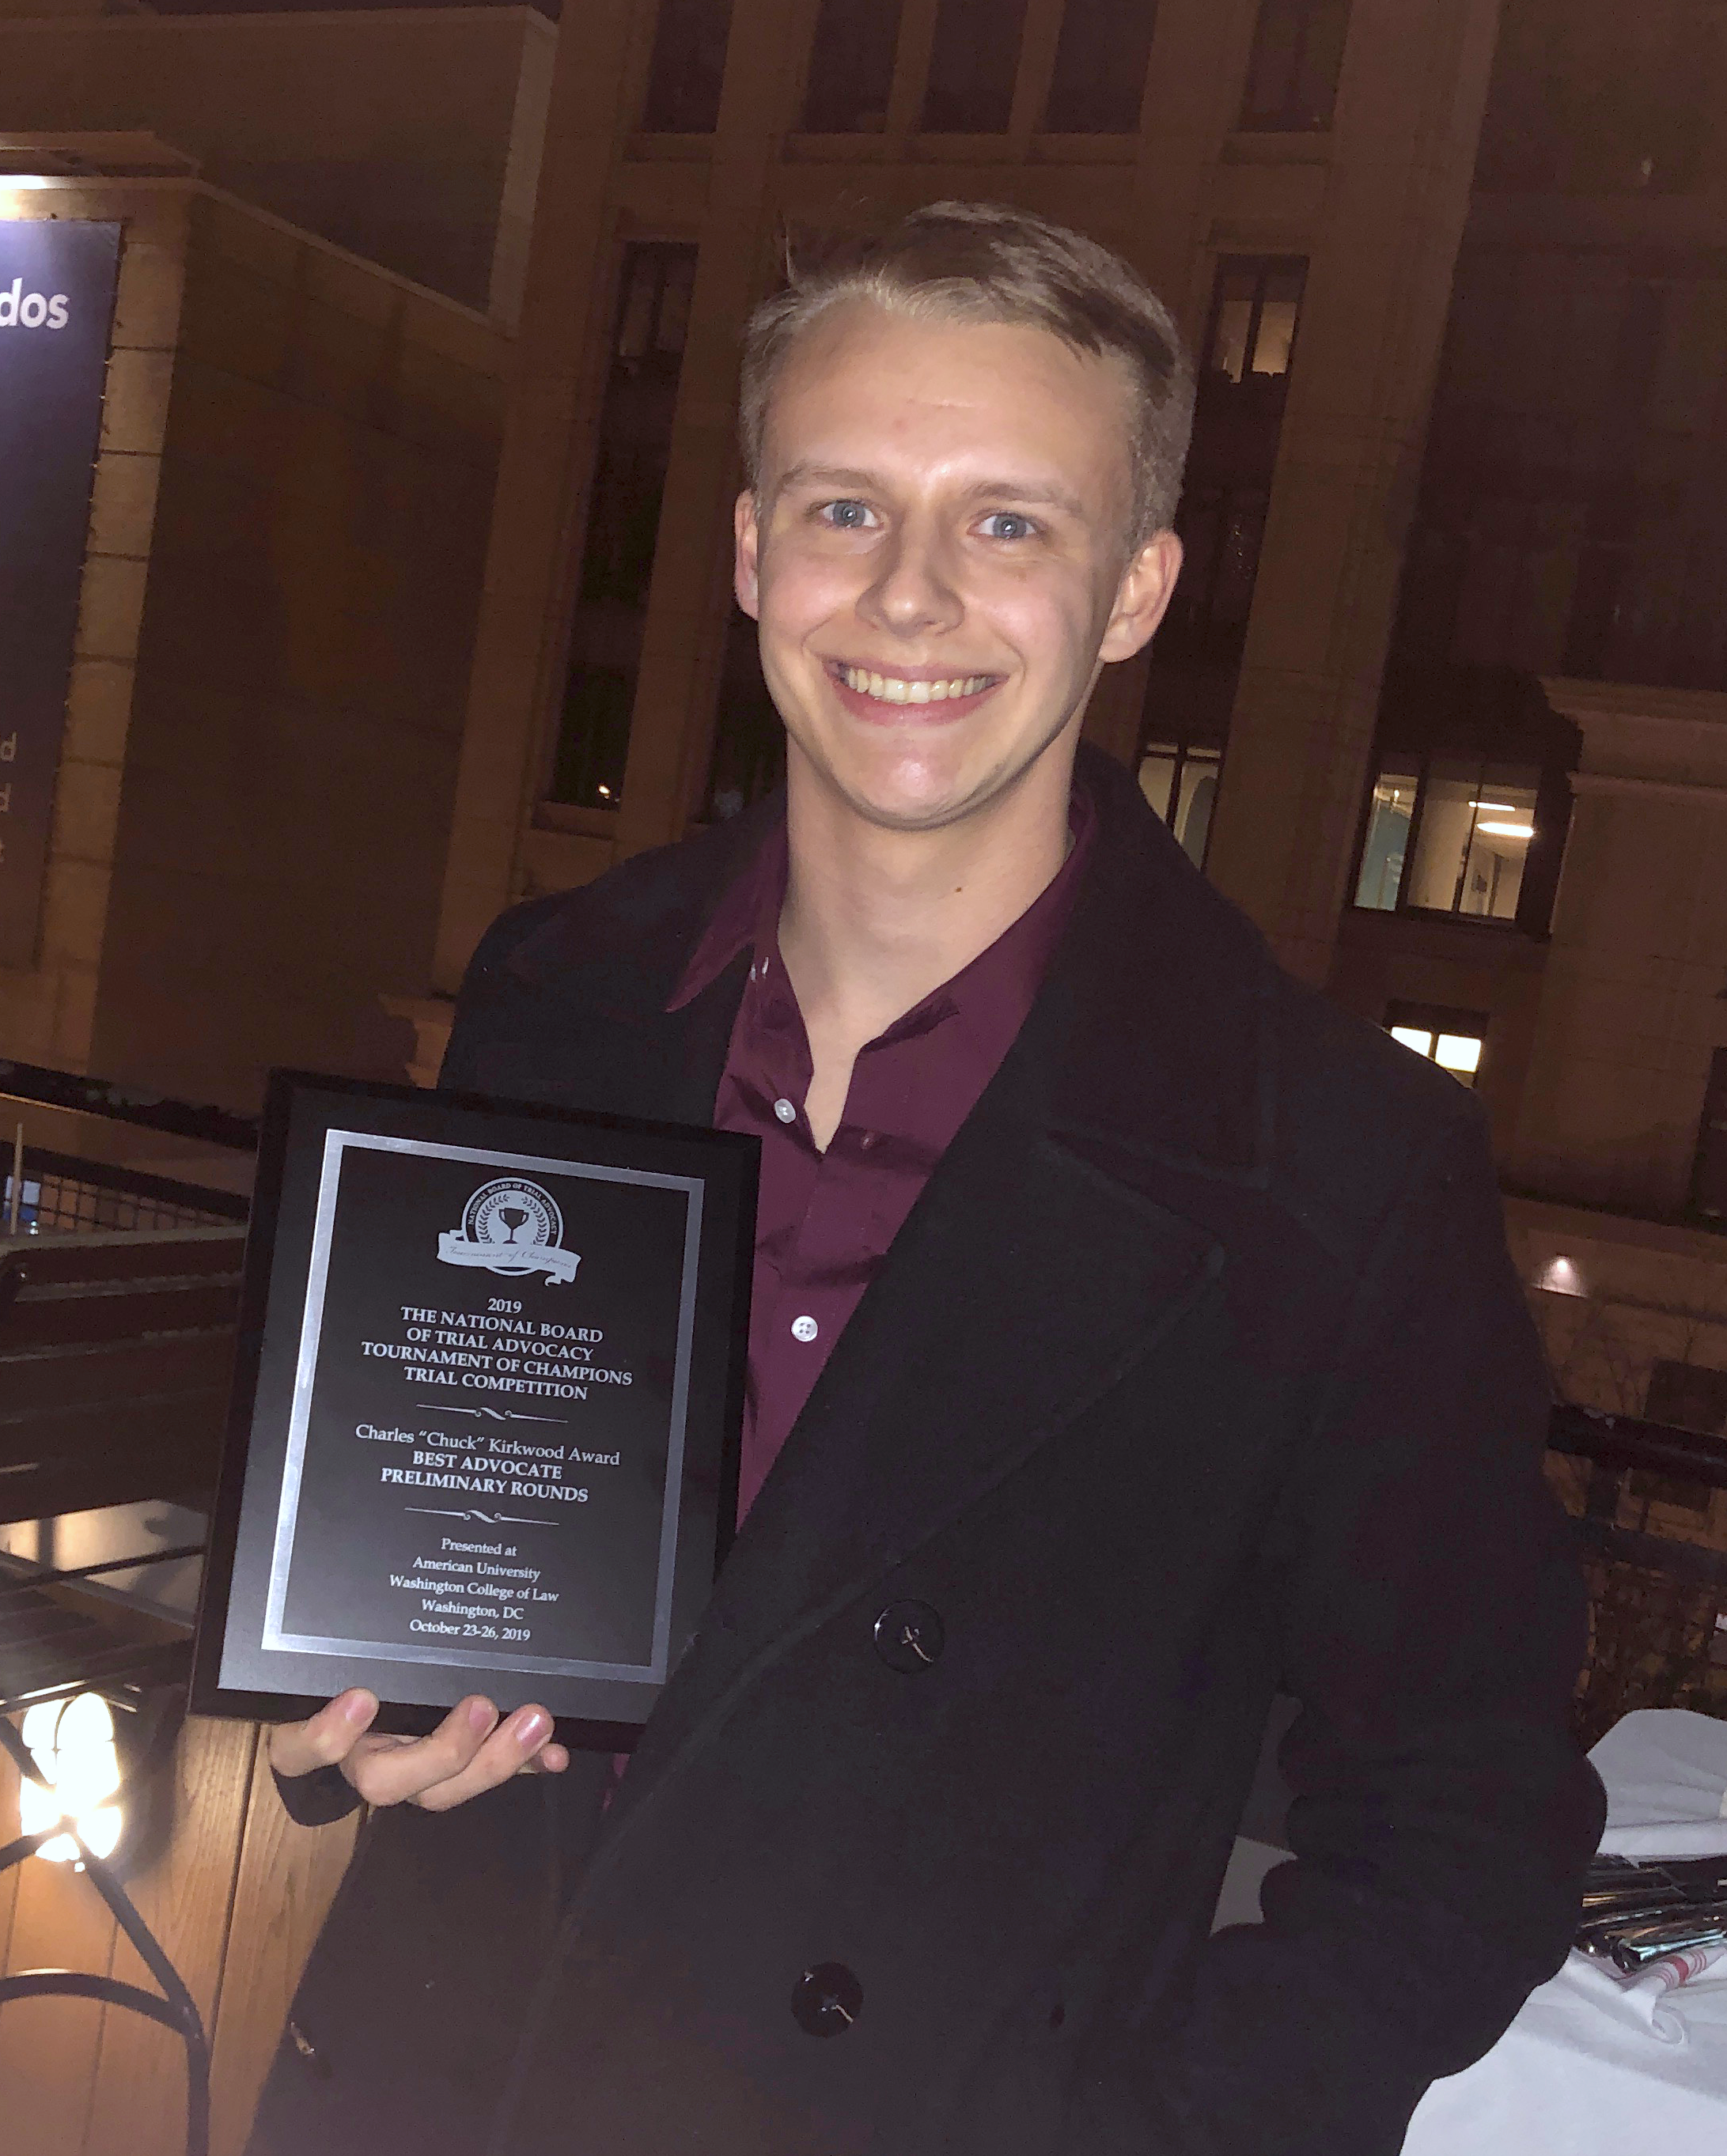 Adam Leydig received the Best Overall Advocate award in the preliminary rounds.